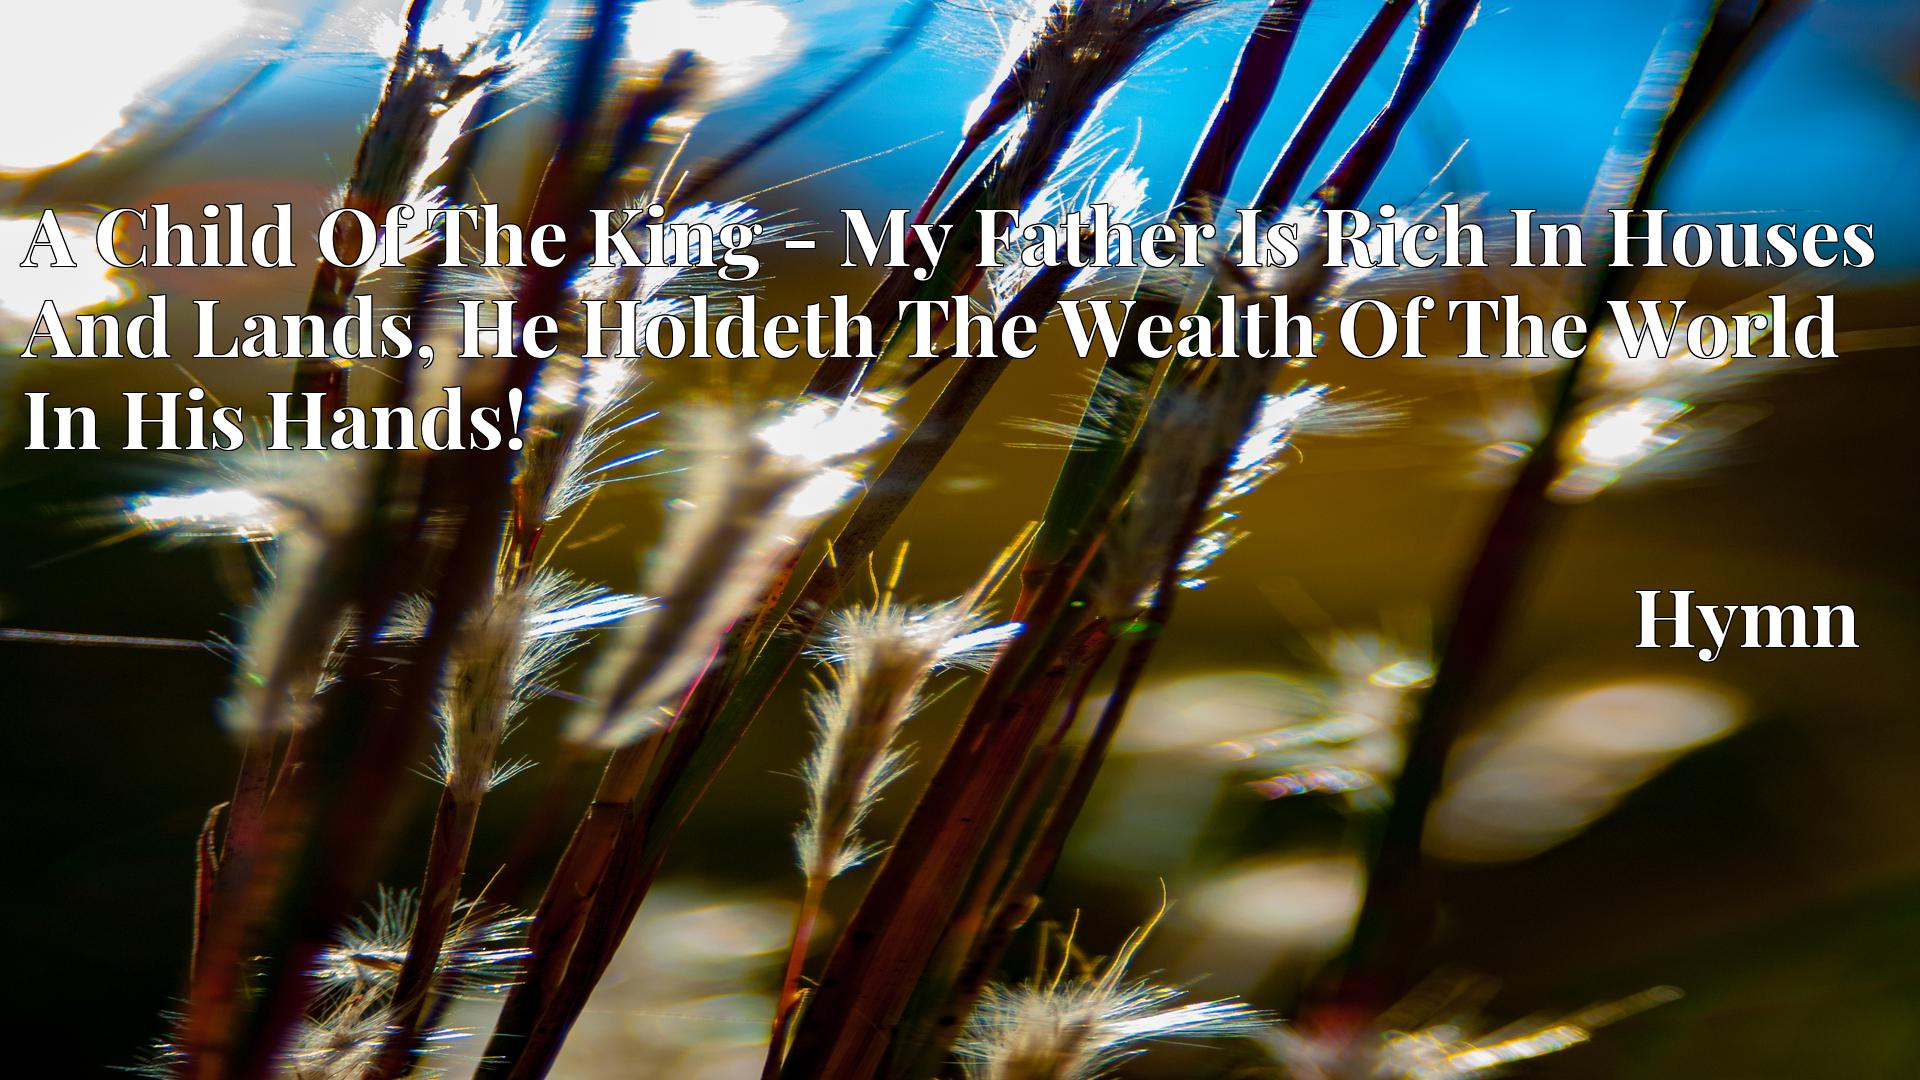 A Child Of The King - My Father Is Rich In Houses And Lands, He Holdeth The Wealth Of The World In His Hands! Hymn